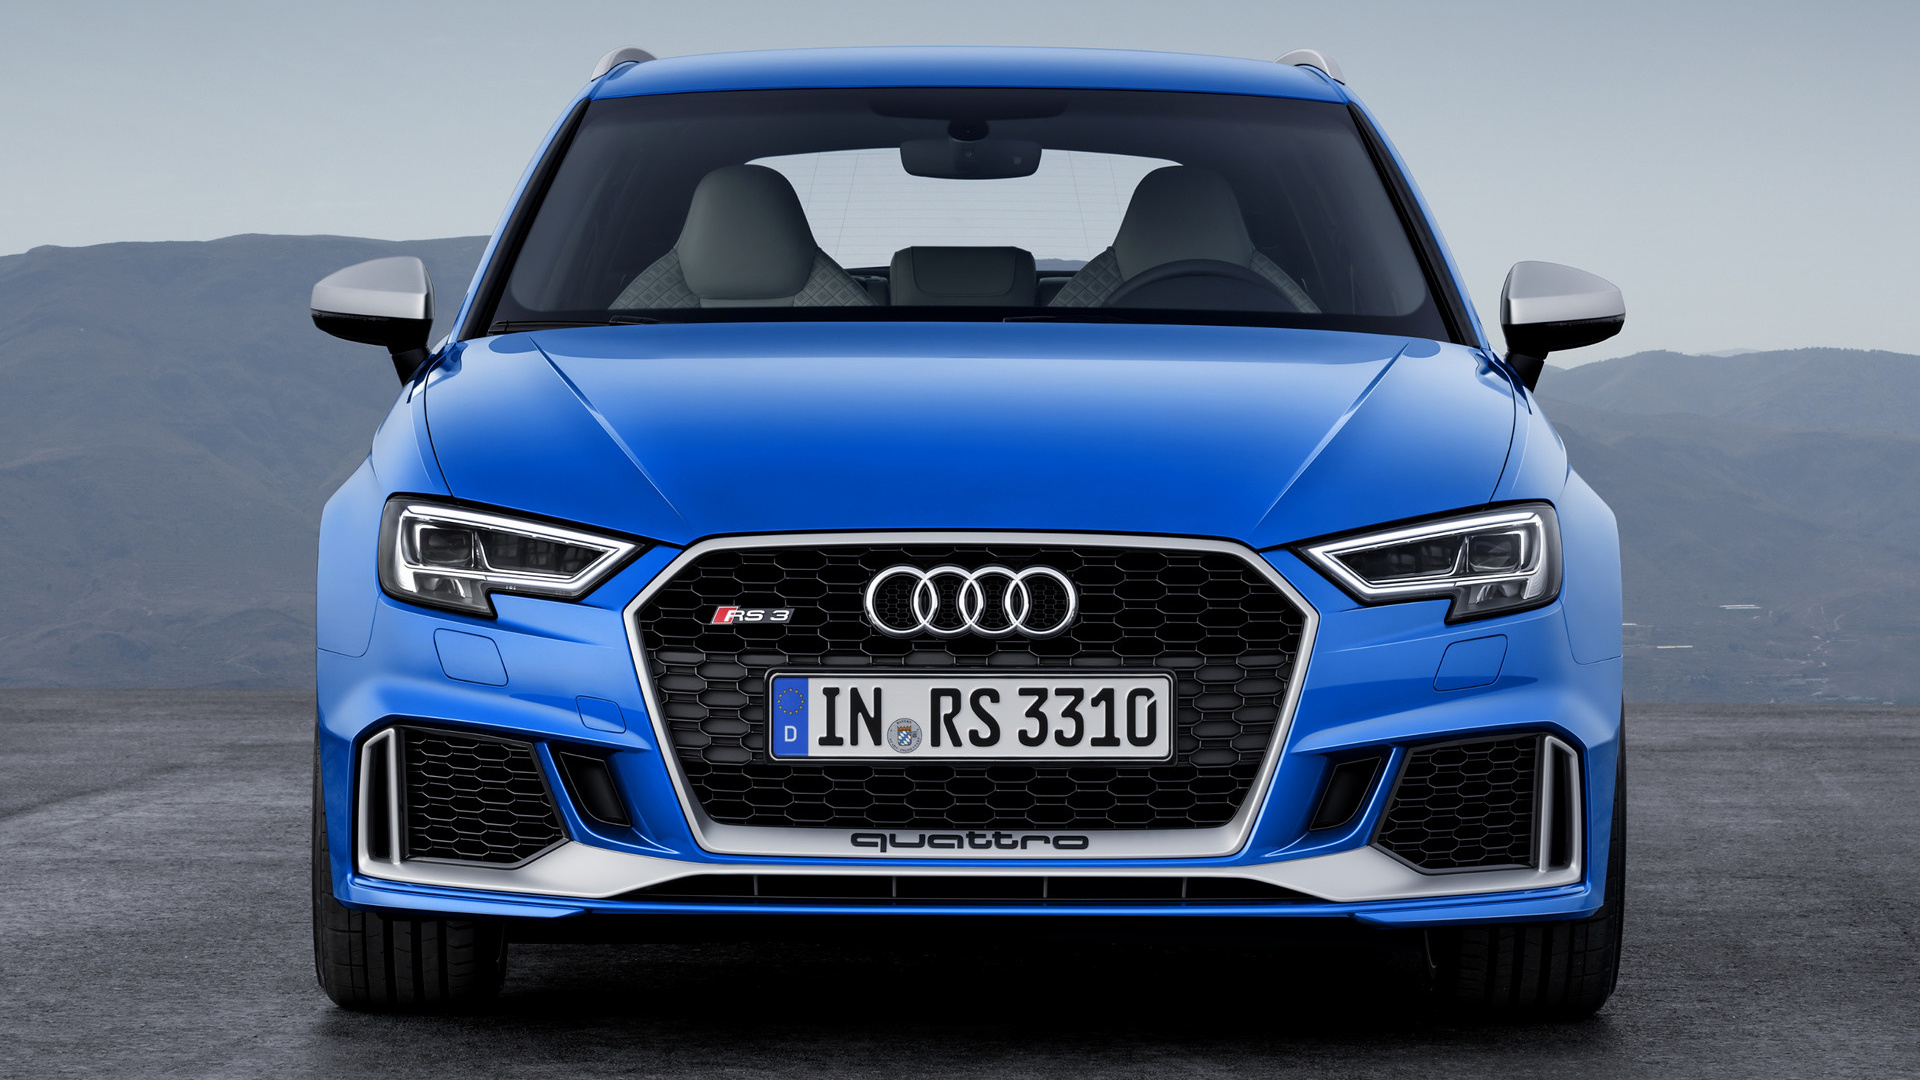 2017 Audi Rs 3 Sportback Wallpapers And Hd Images Car Pixel